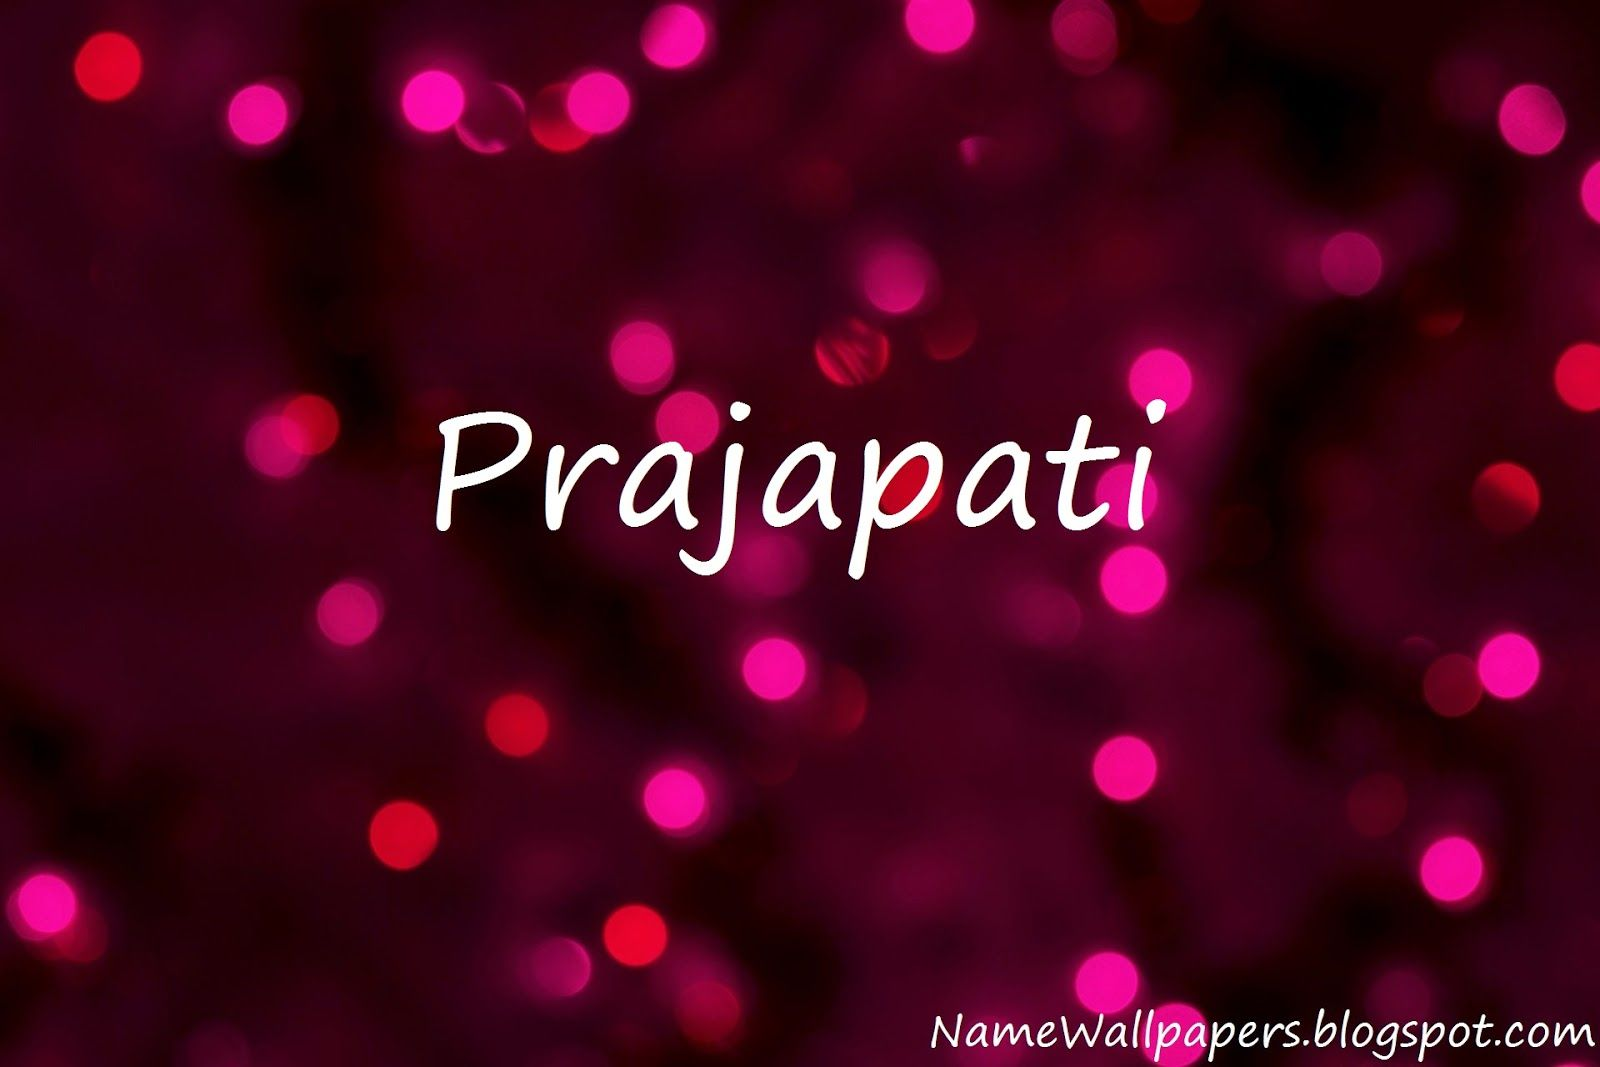 Prajapati Name Wallpapers Wallpaper Urdu